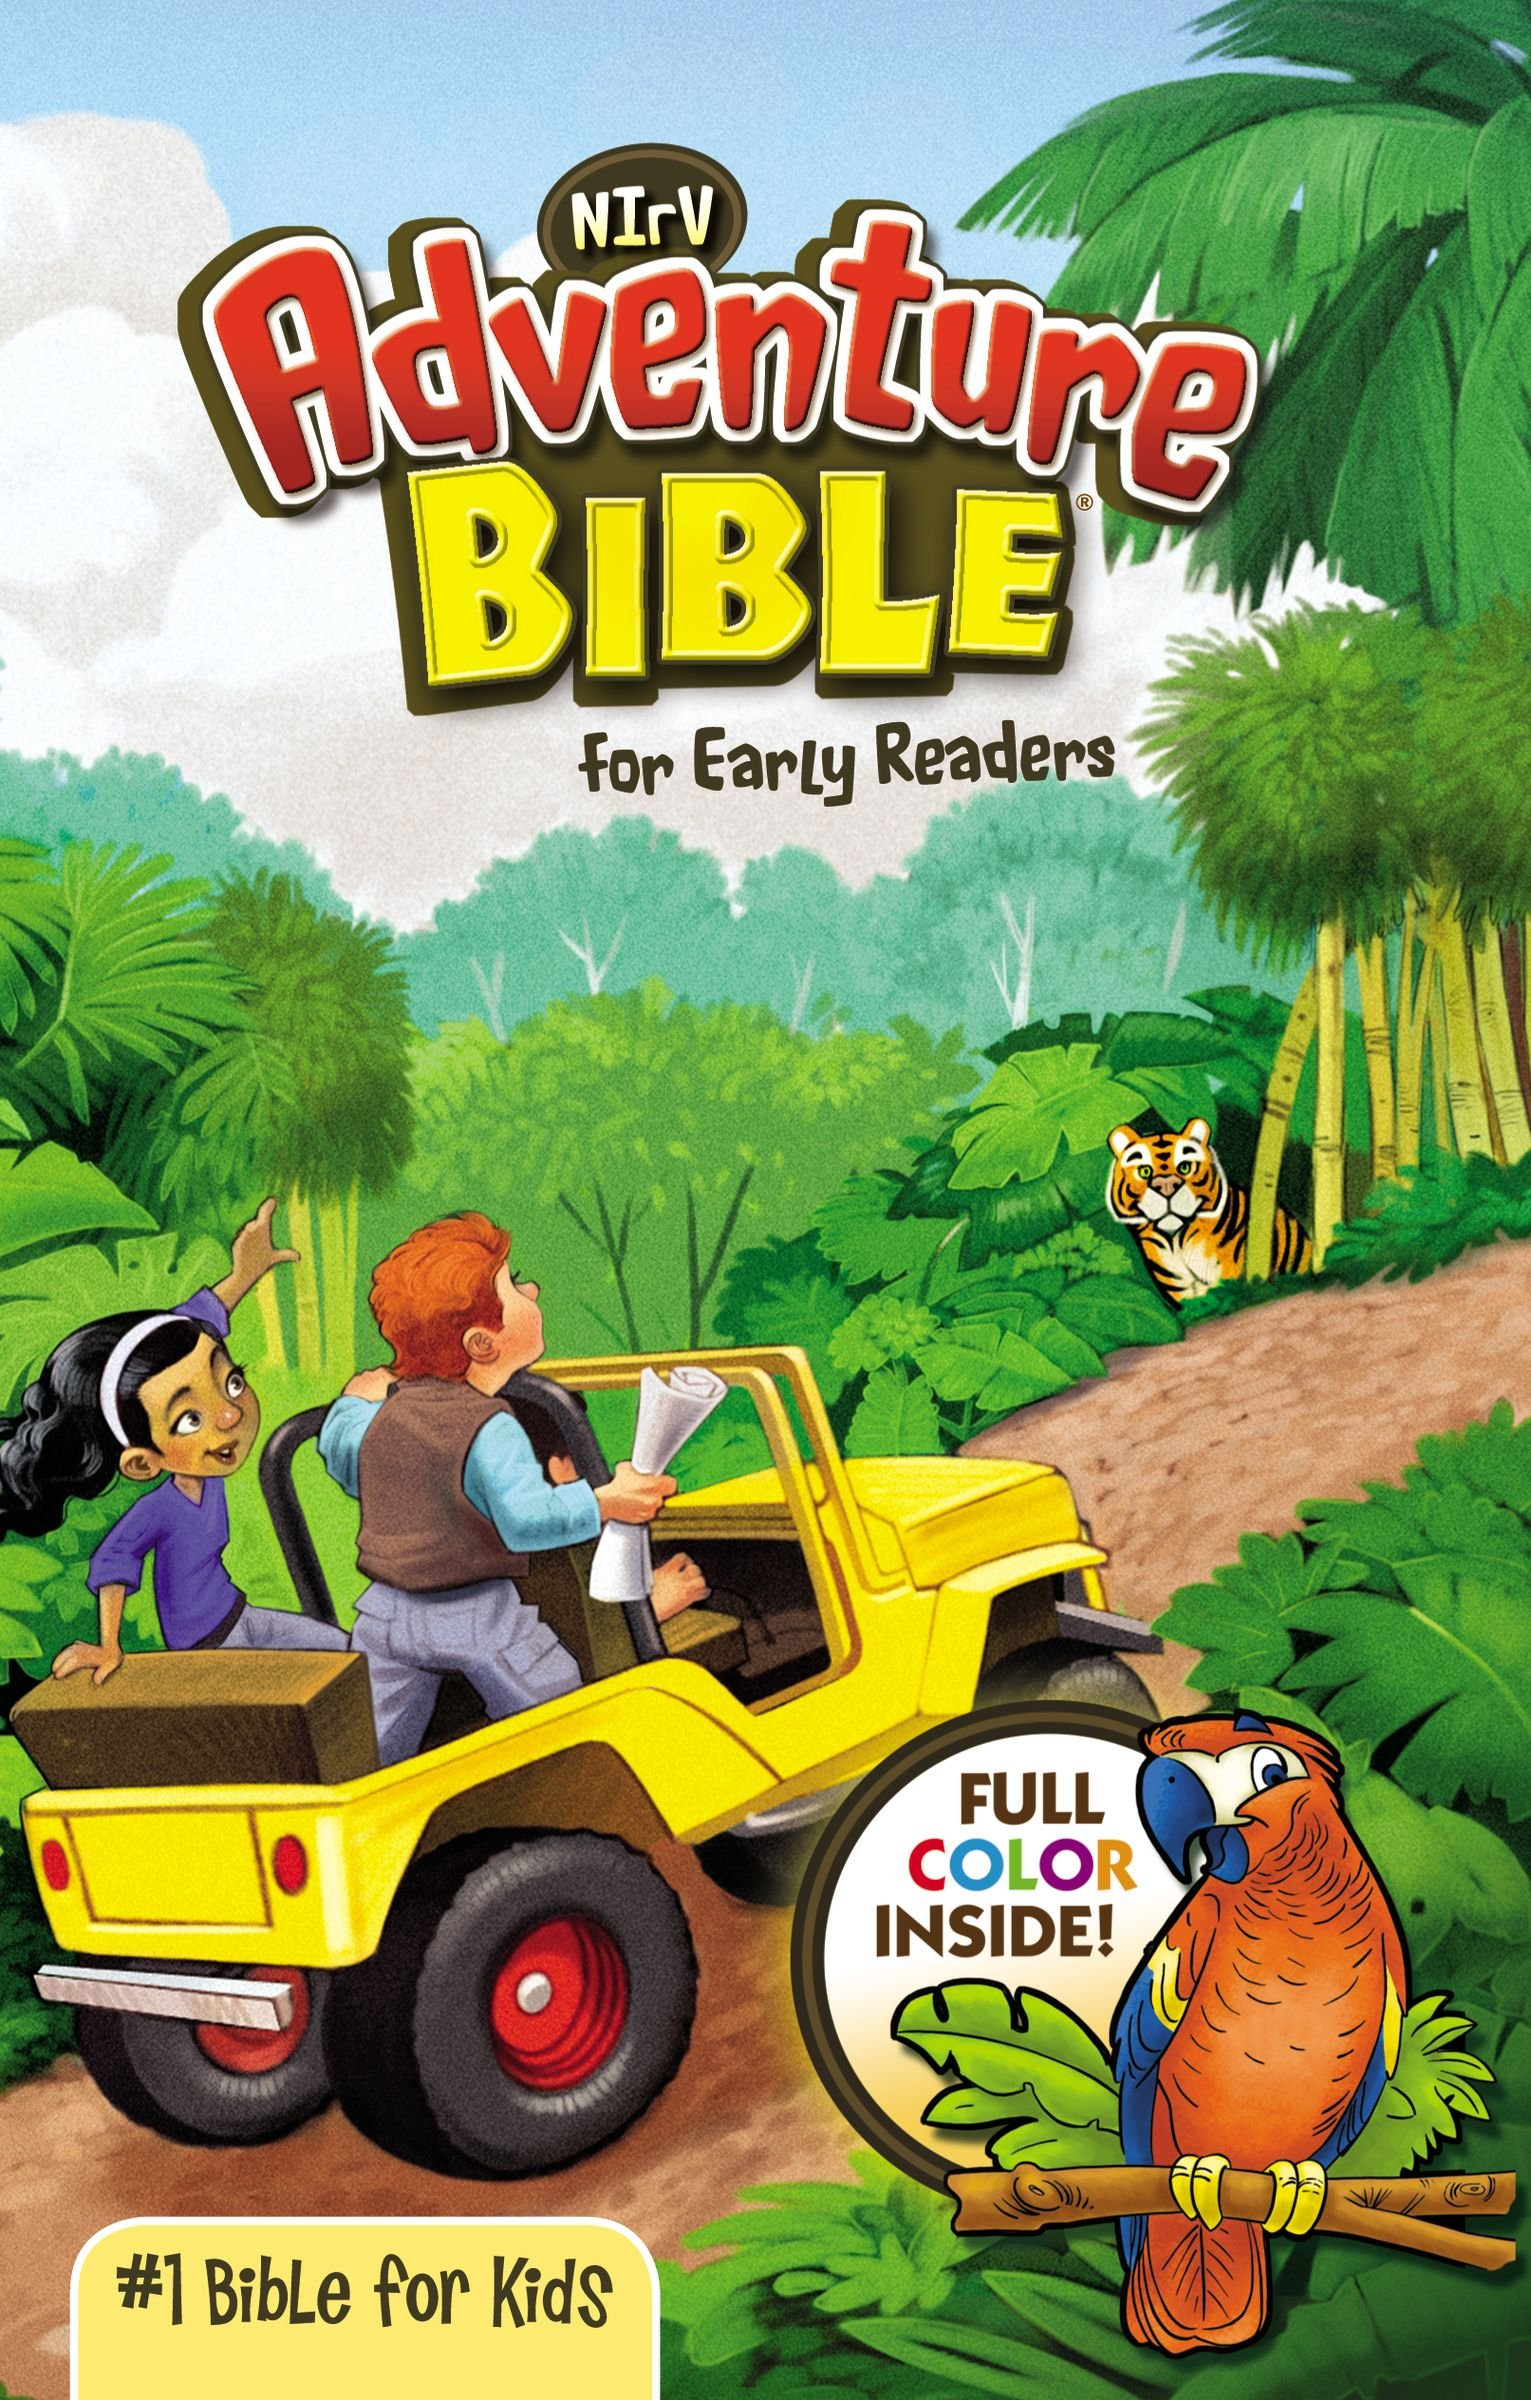 nirv adventure bible for early readers paperback full color